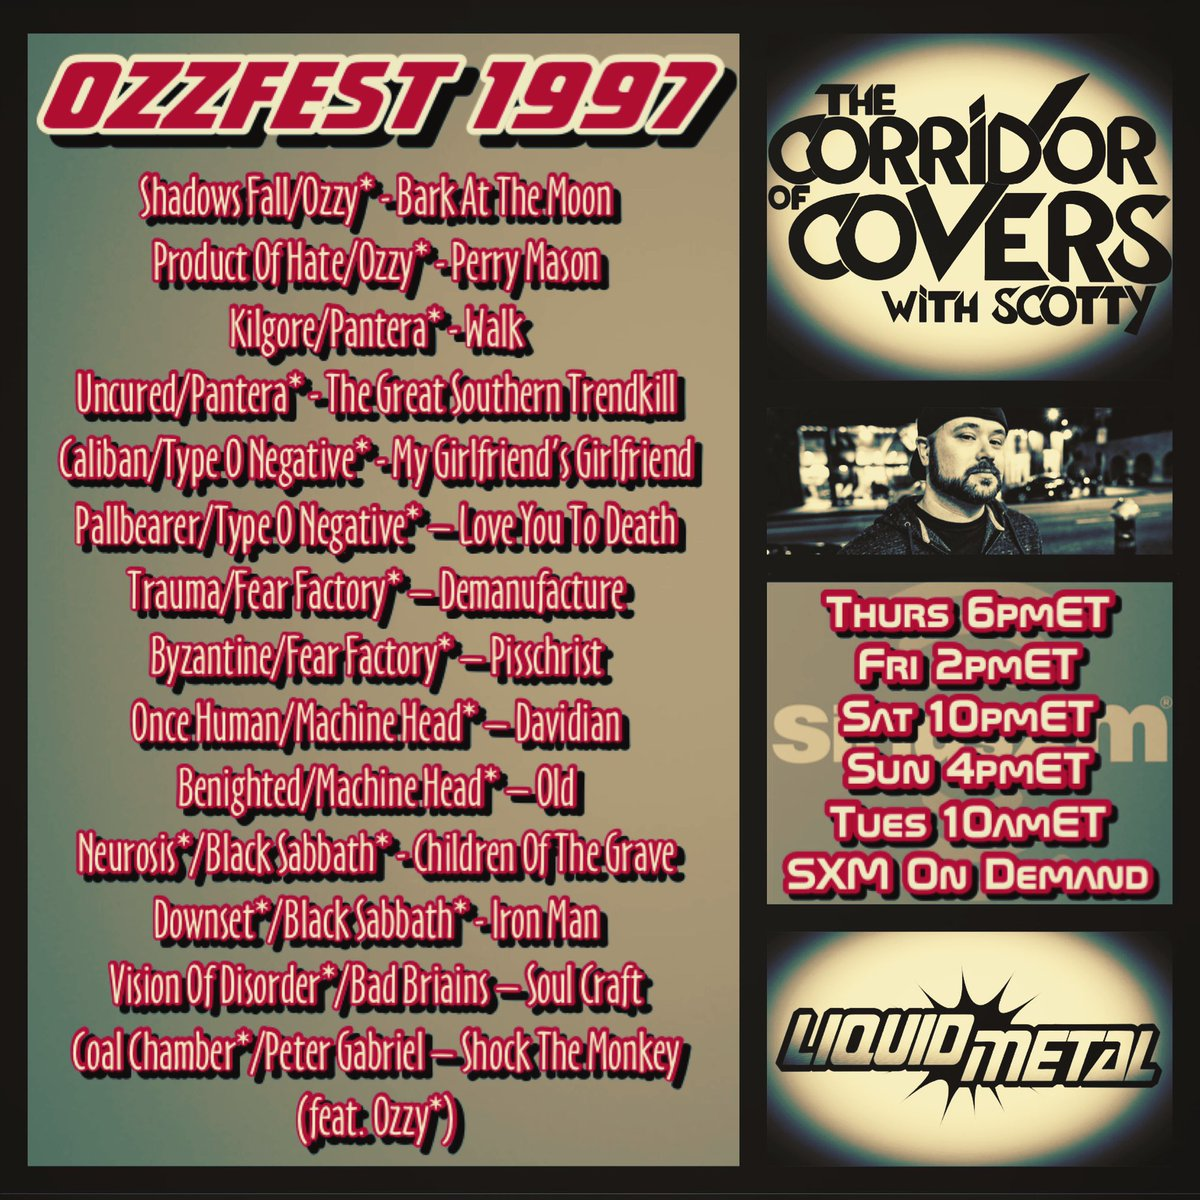 #corridorofcovers w/ @scottcrynock on #sxmliquidmetal .. where you at #ozzfest '97? Remember seeing any of these bands*? #metal #heavymetal #siriusxm #coversong #metalcovers pic.twitter.com/iJ3FpTuQQY